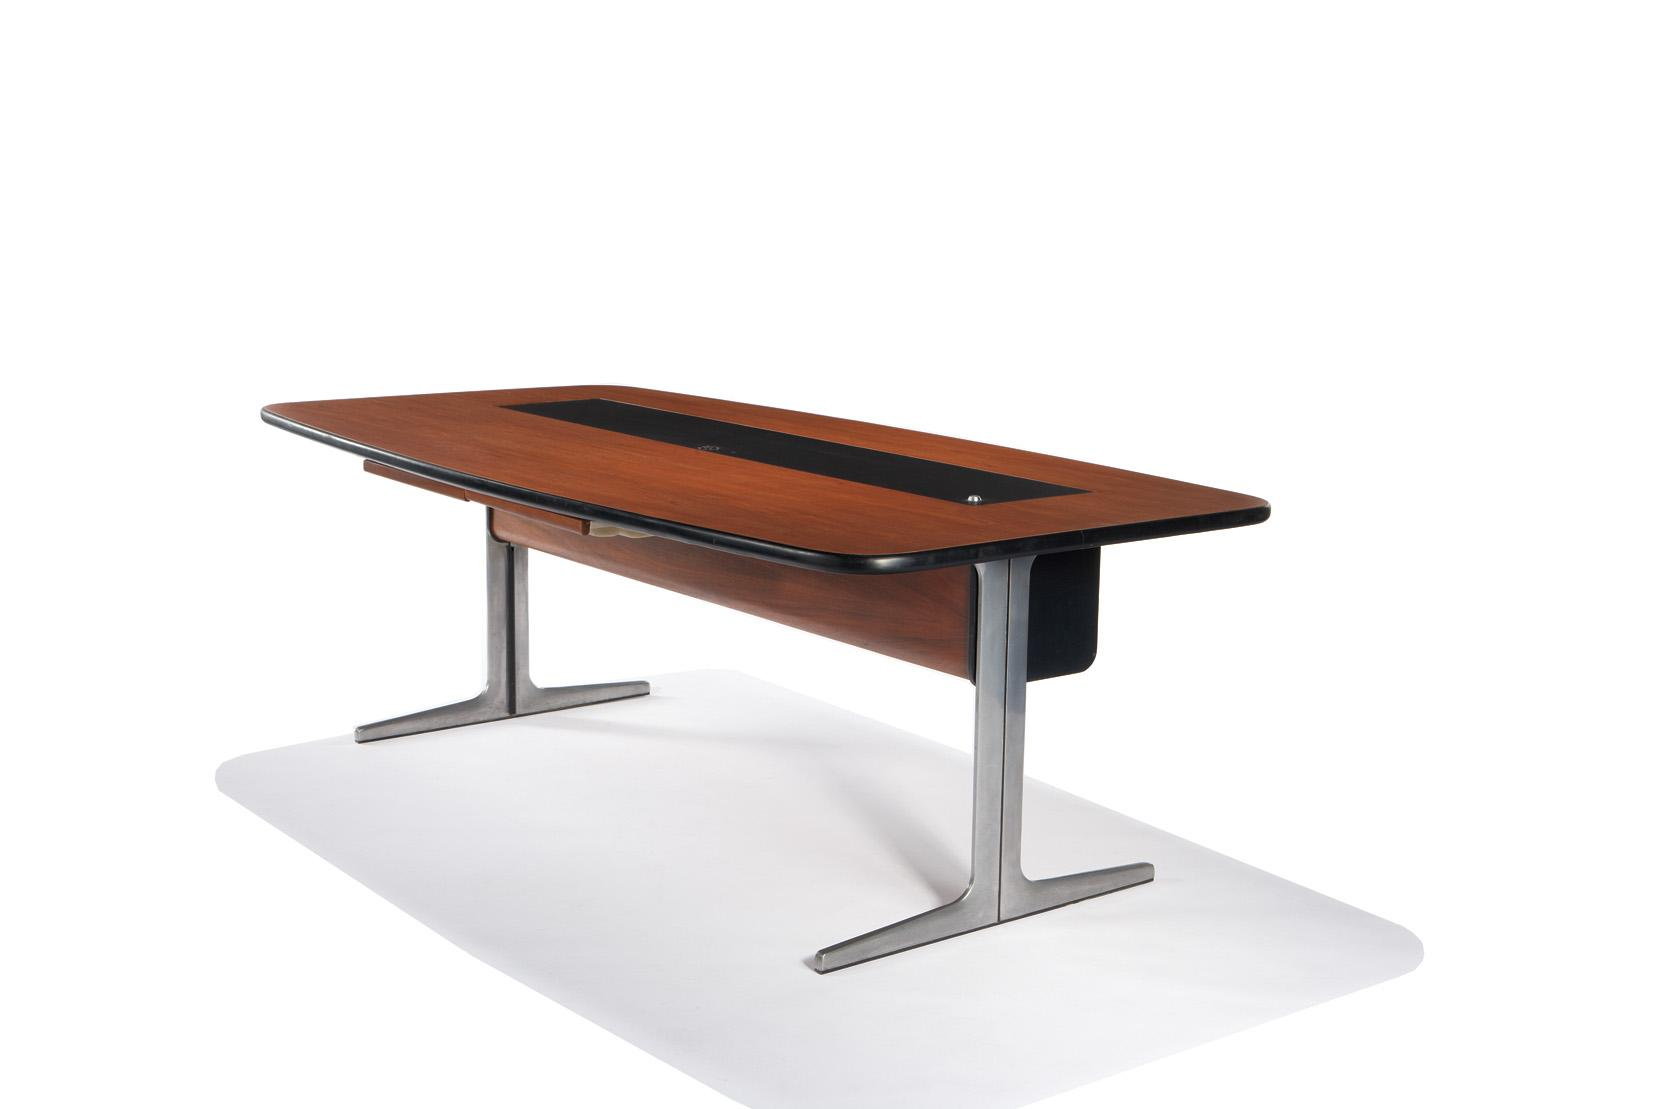 George nelson herman miller action office conference desk - Herman miller office desk ...